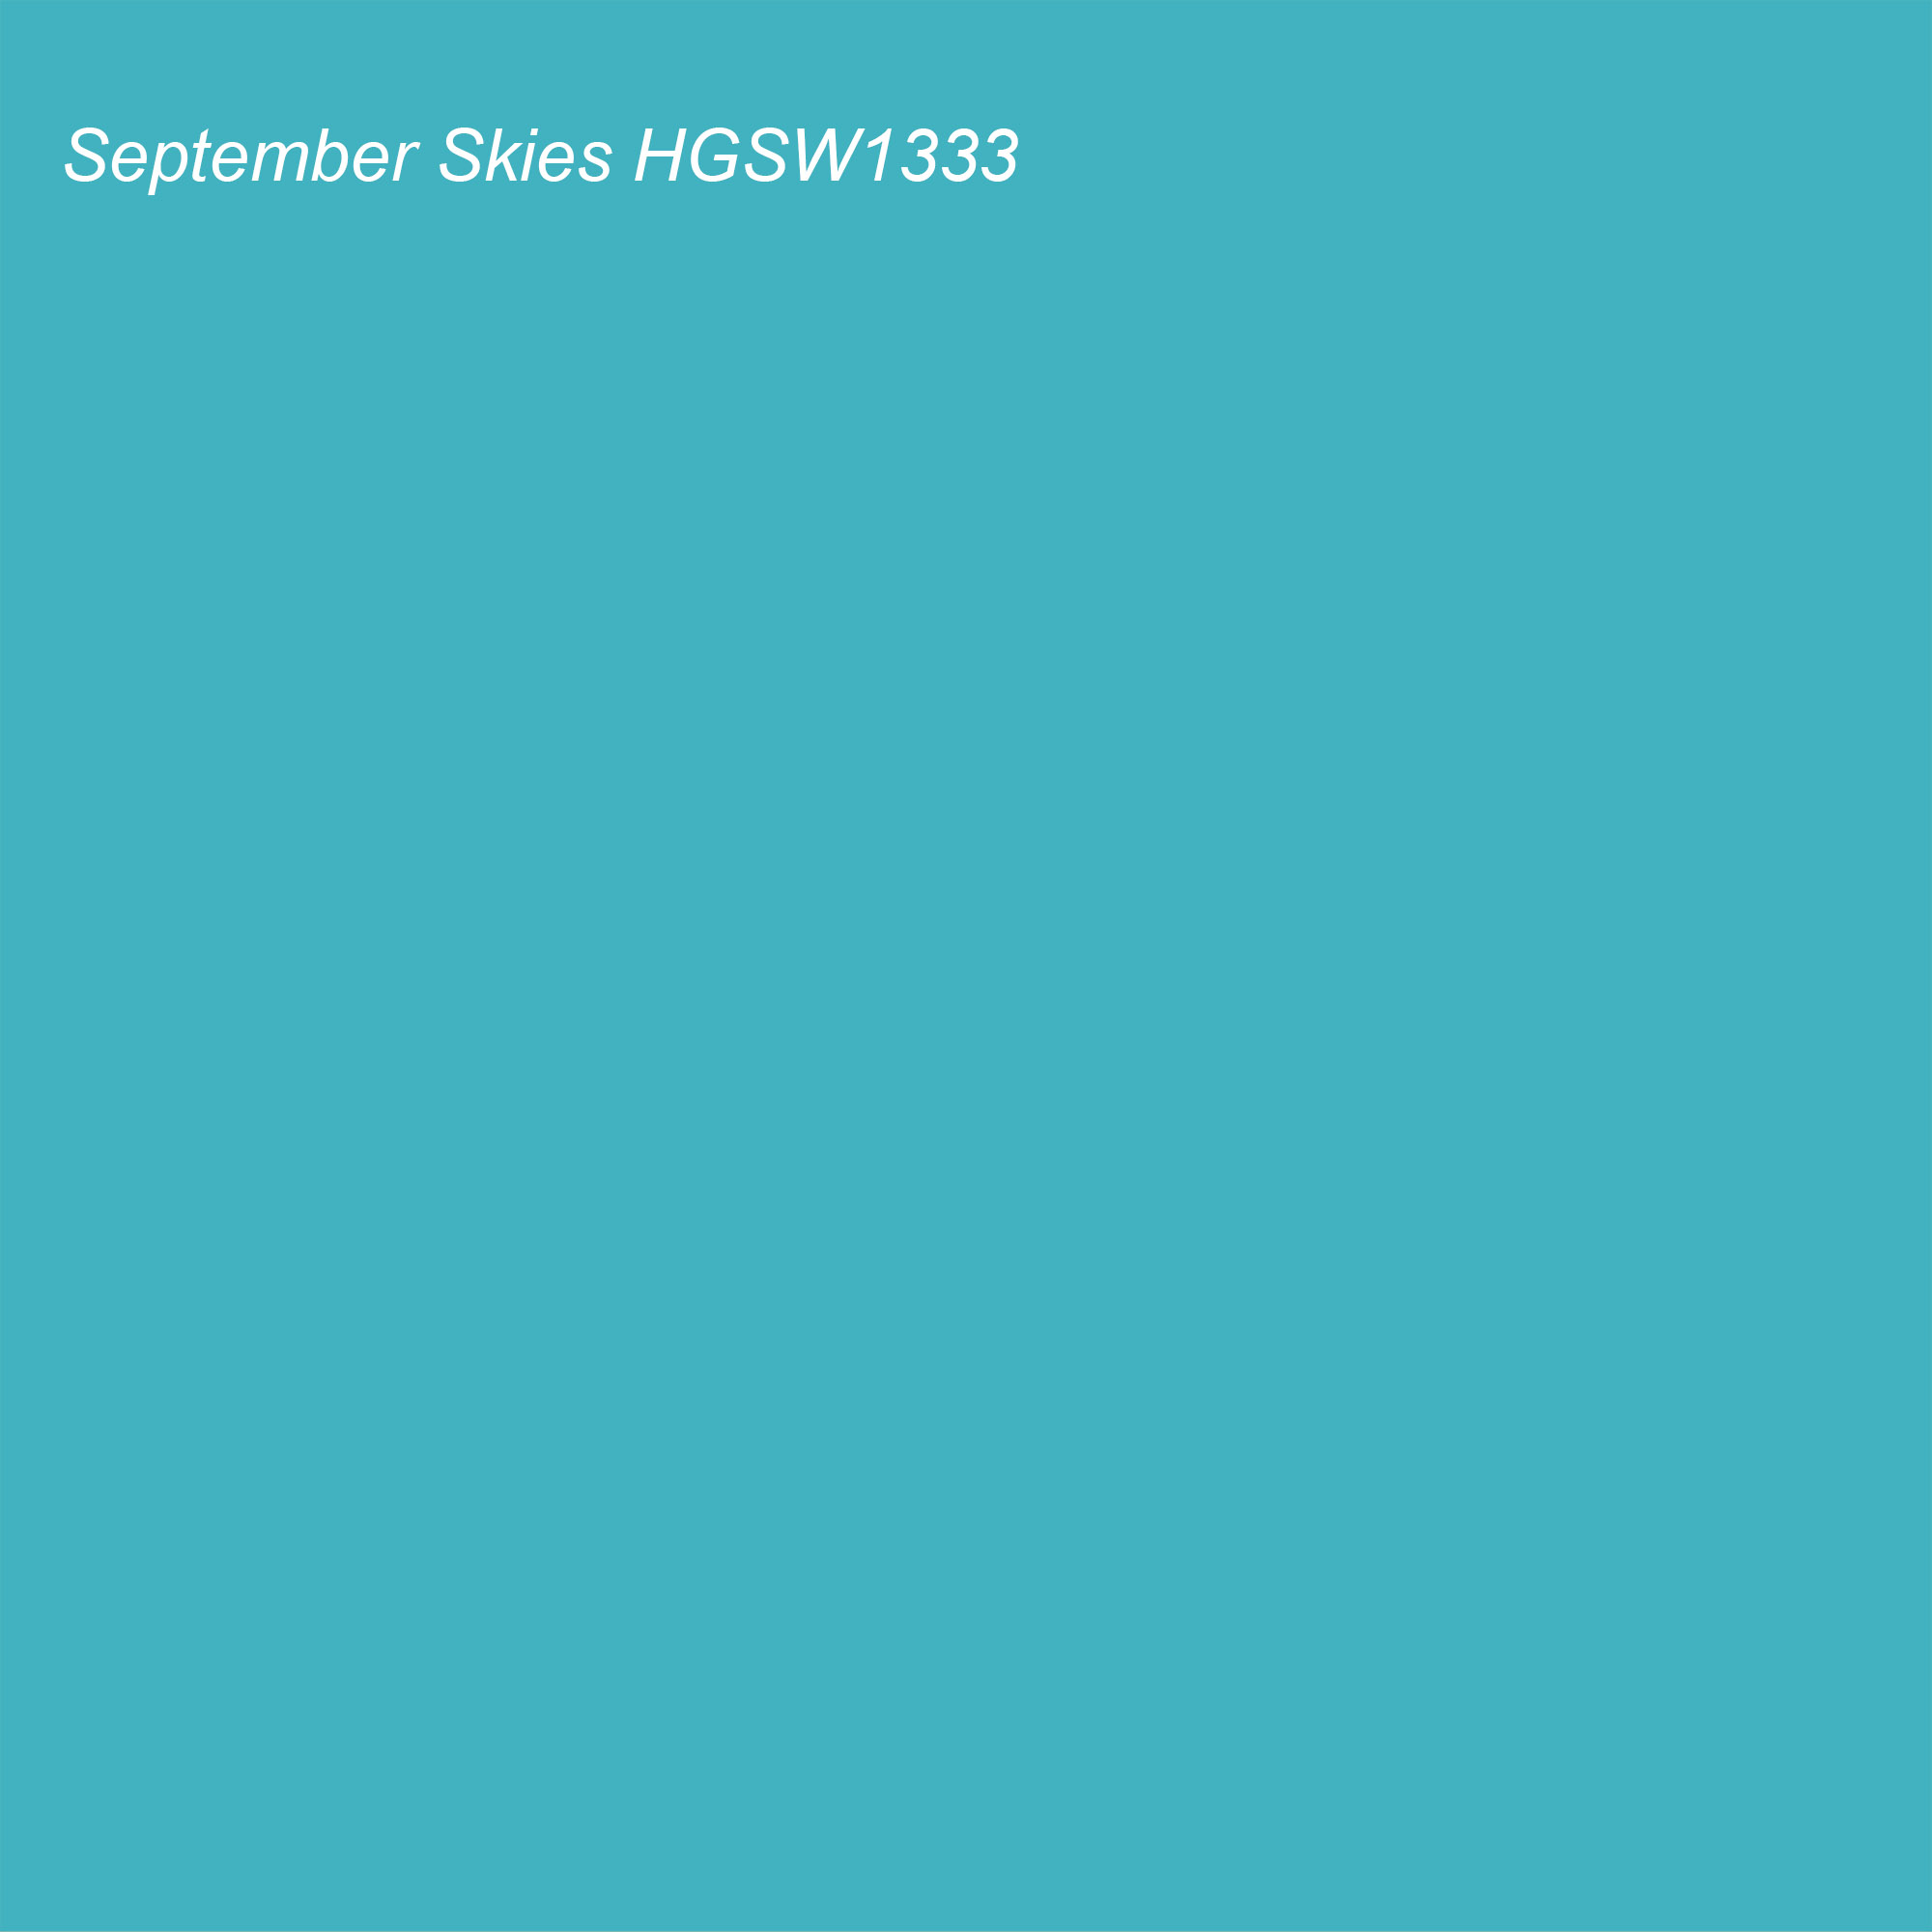 HGTV 2021 Color of the Year Suggested Accent Shade September Skies HGSW1333